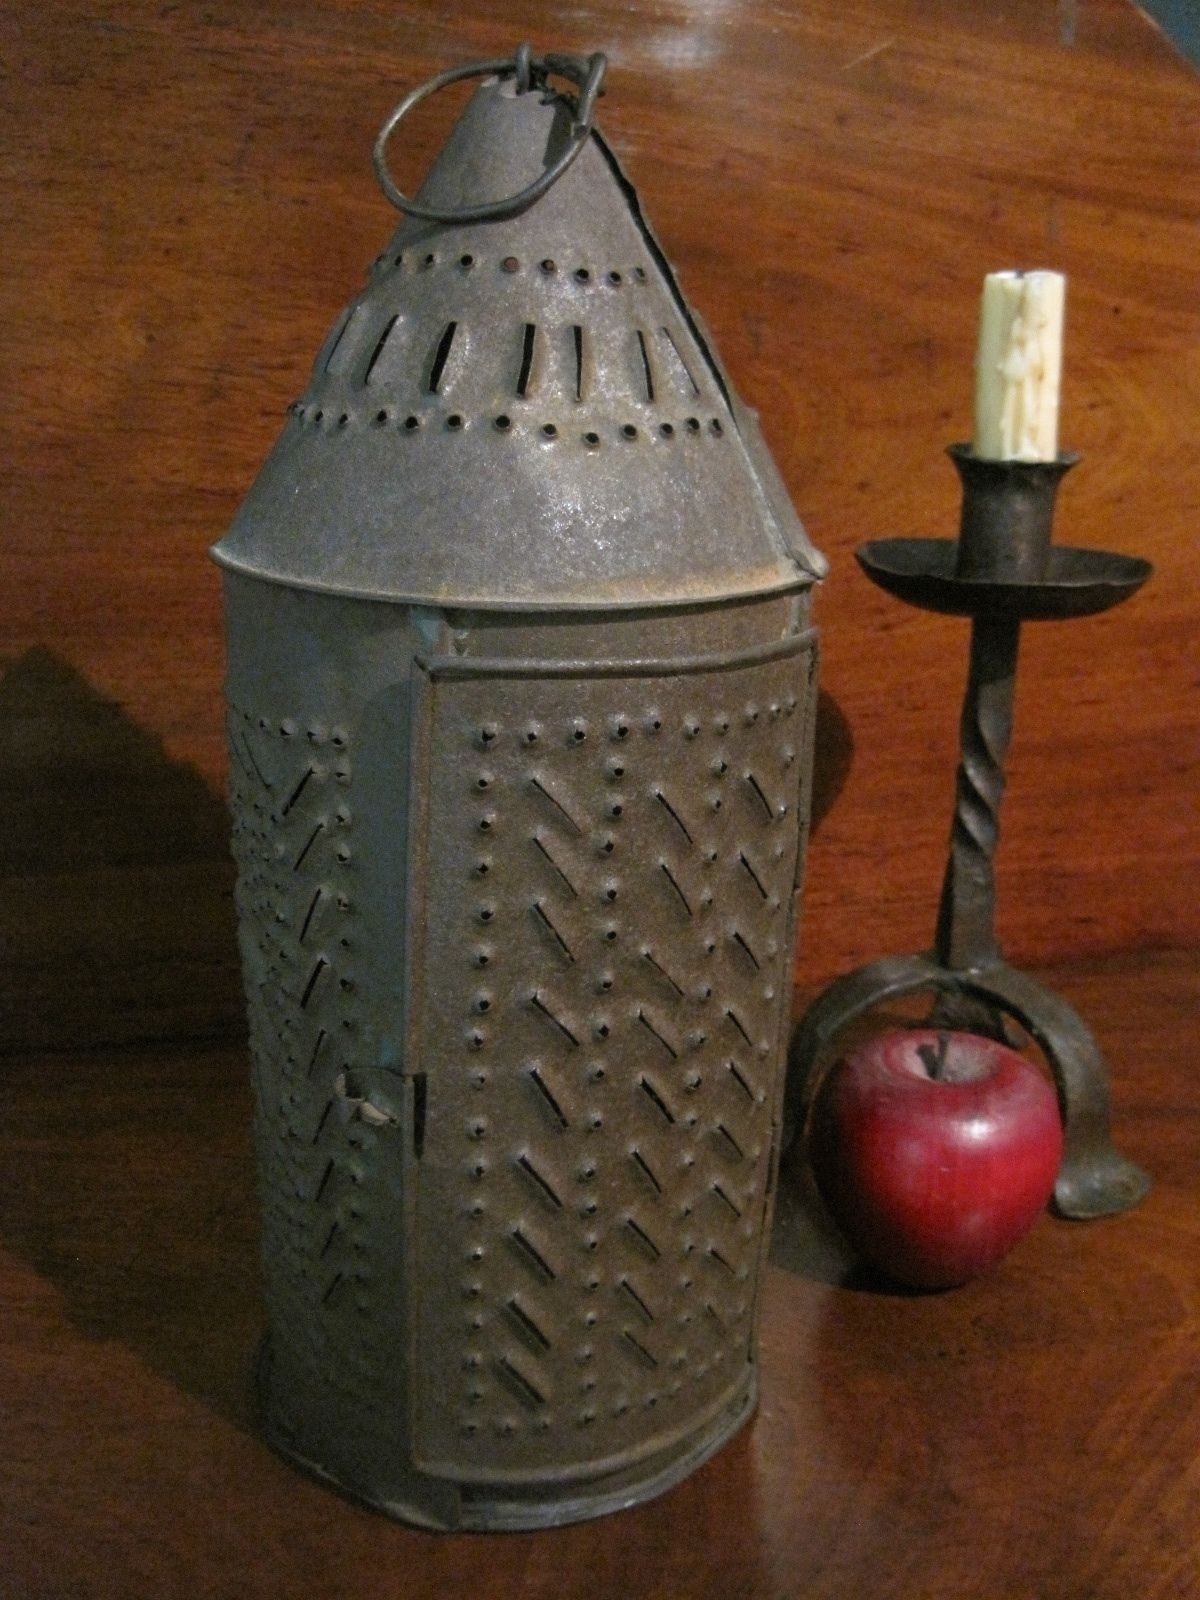 Antique 1800s New England Folk Art Punched Tin Candle Holder Lantern Sold Ebay 375 0 Tin Candle Holders Primitive Candle Holders Lantern Candle Holders